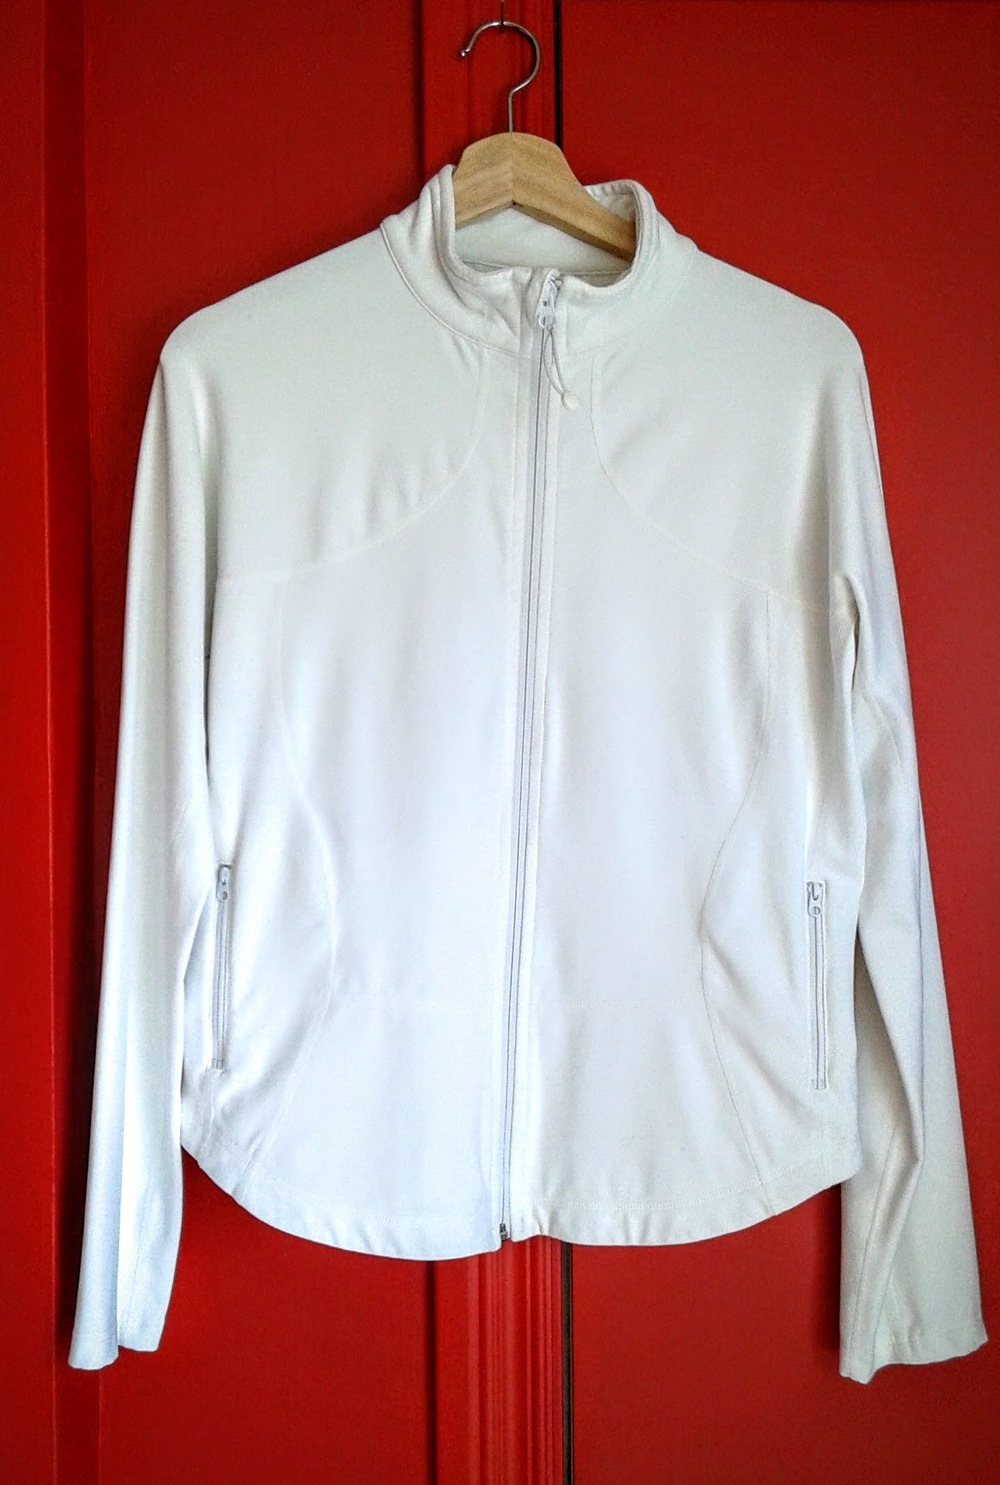 Lululemon zip-up; Size L, $30